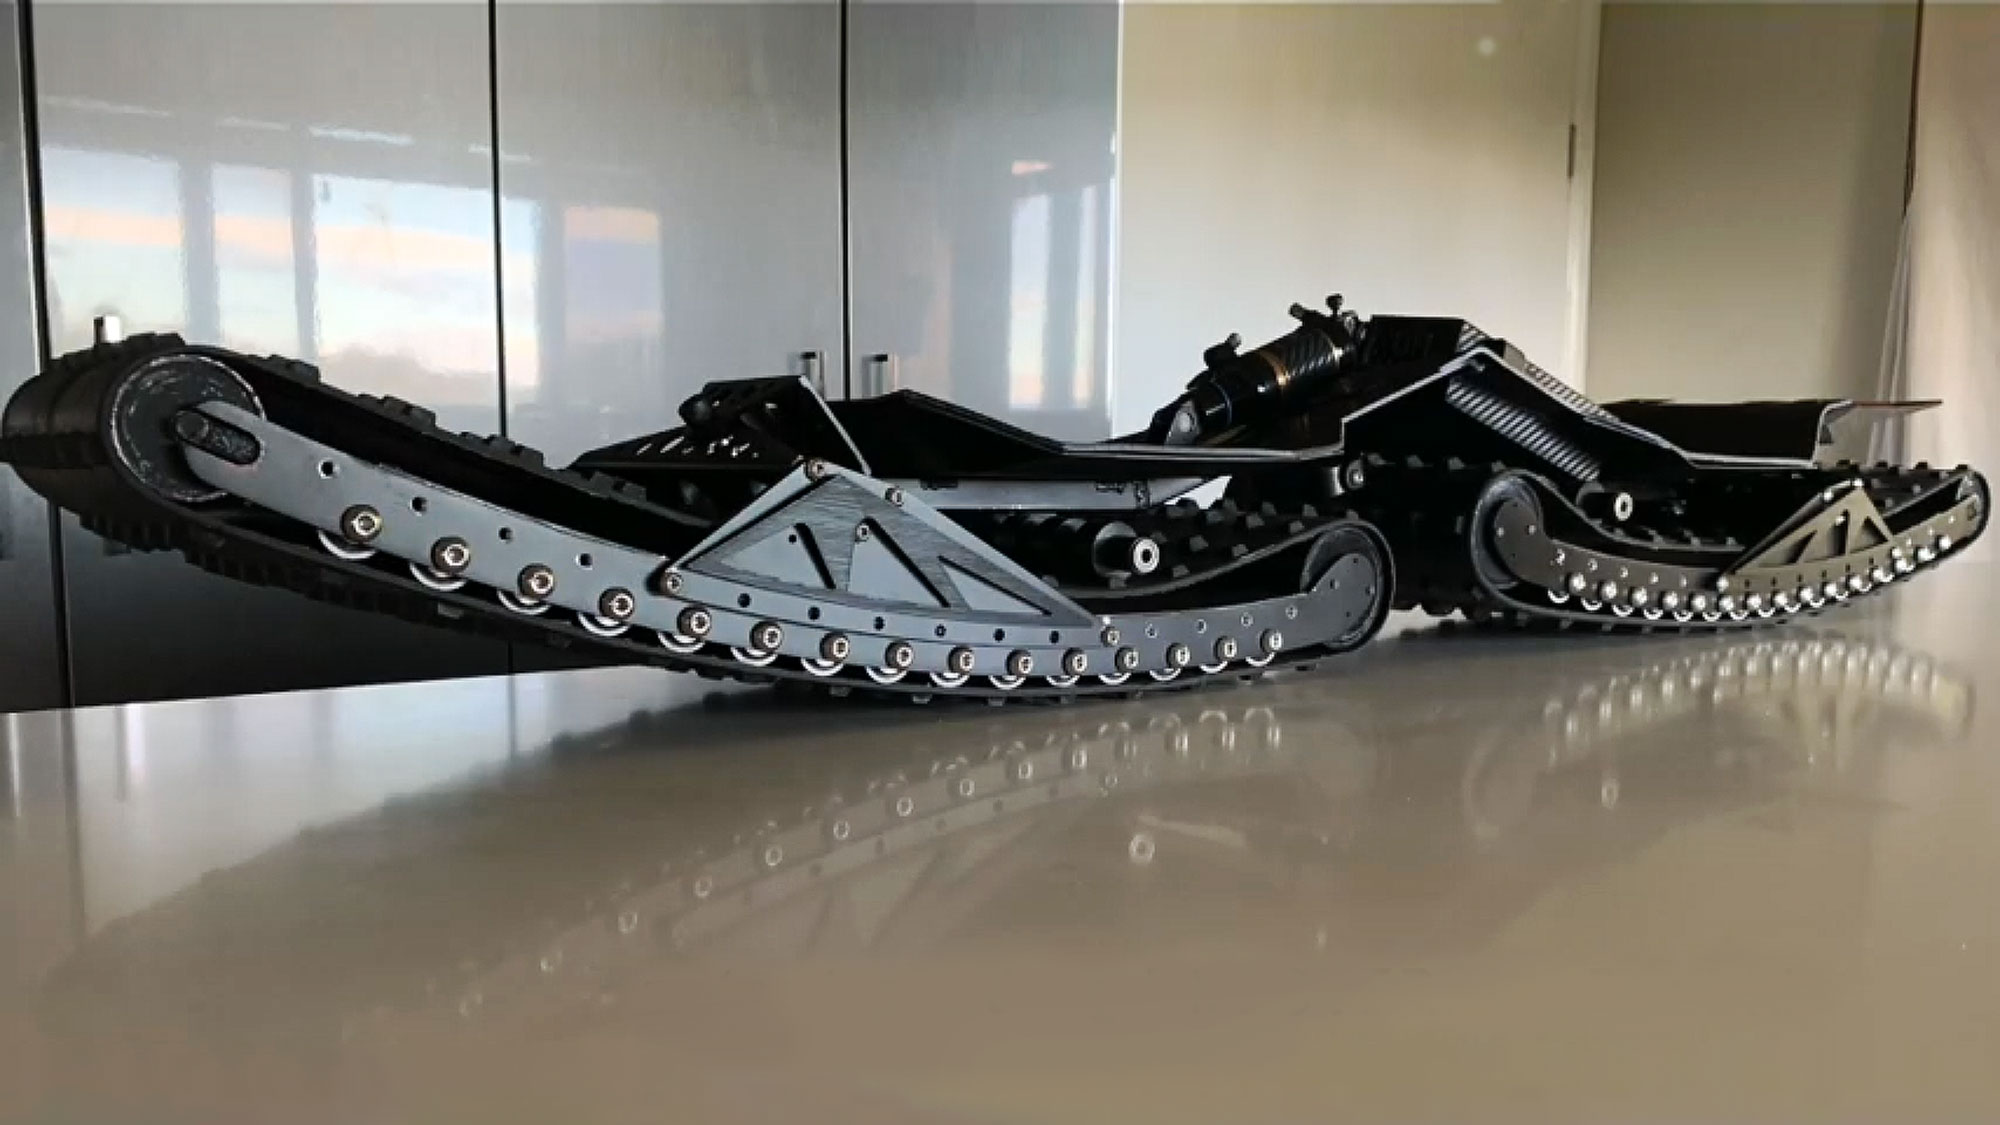 Ungoverned Vendetta Tracked Electric Skateboard